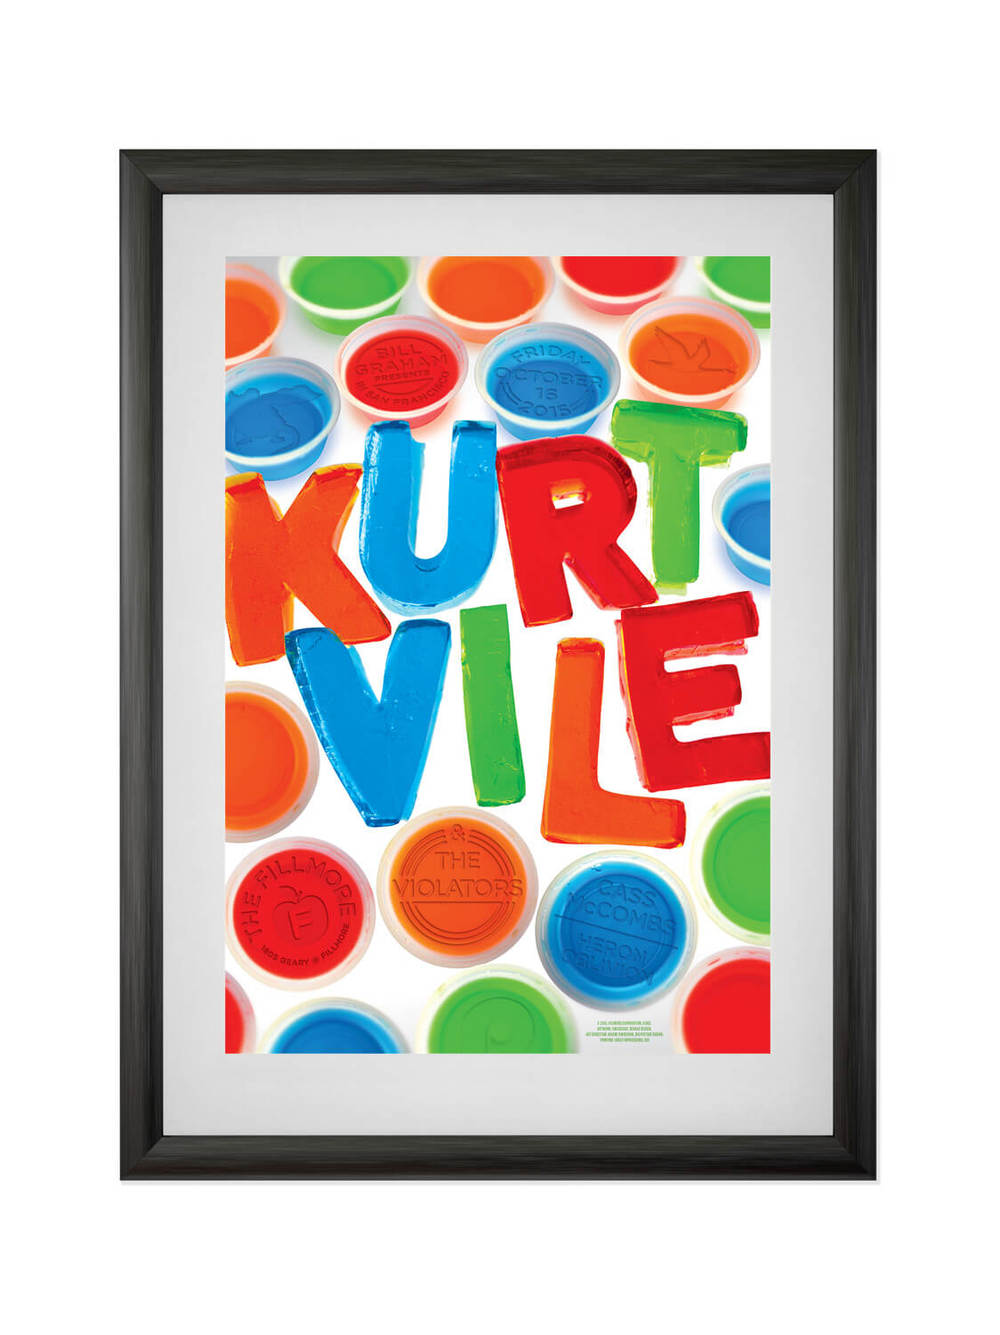 KURT VILE & THE VIOLATORS • FILLMORE SF • 10/15/2015 Poster for Philadelphia's favorite son, Kurt Vile. Buy now.